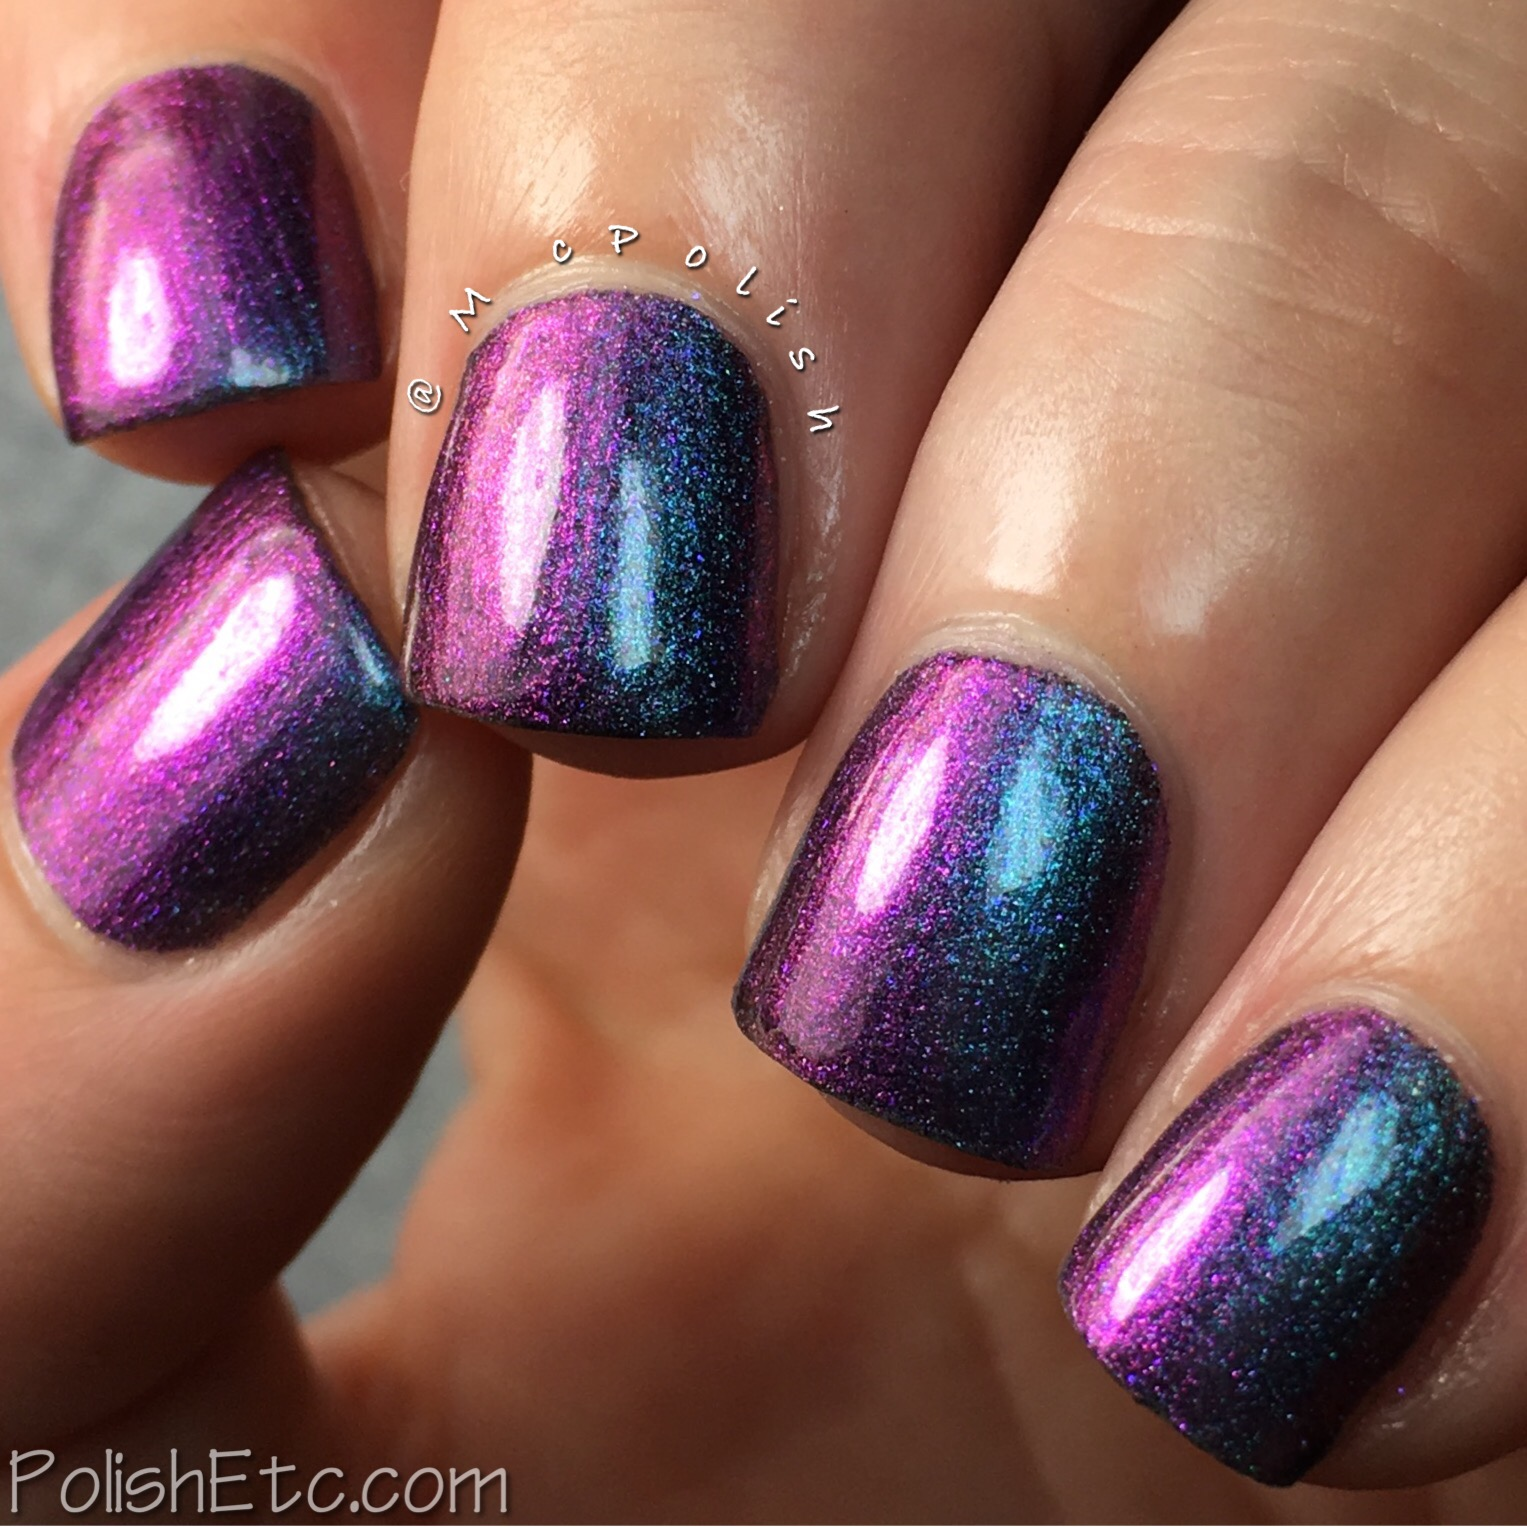 Ellagee - Throne Shippers Collection - McPolish - Tarthbane